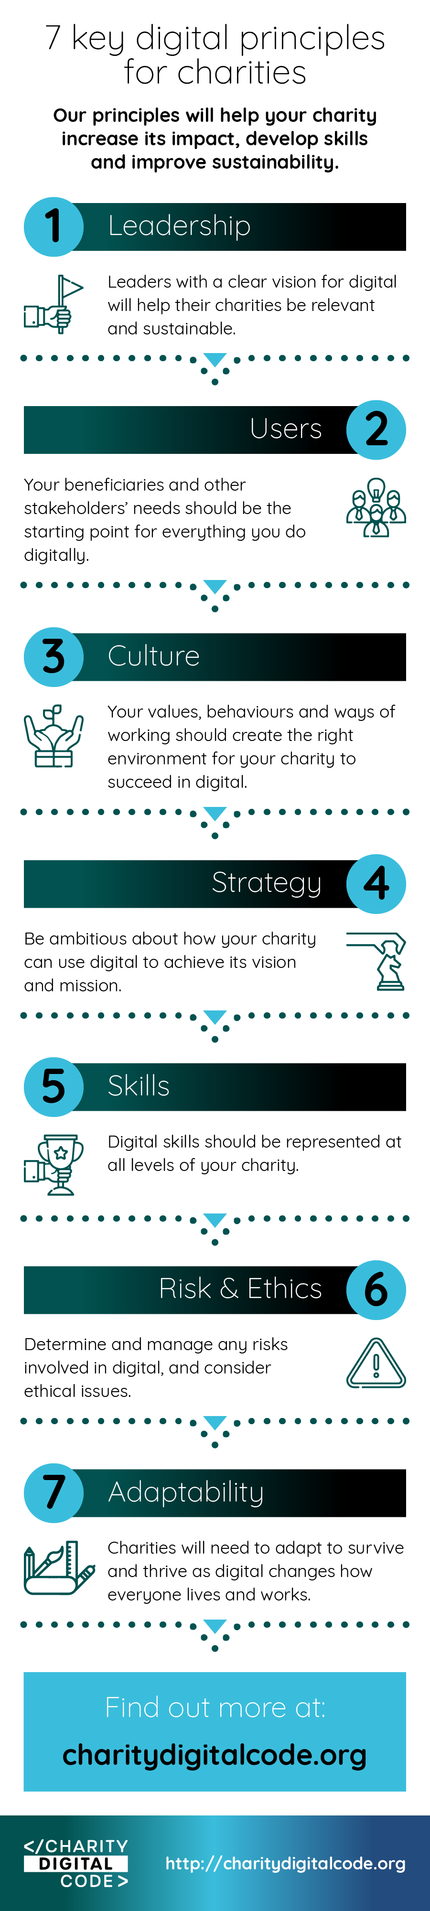 Infographic of Charity Digital Code 7 Principles